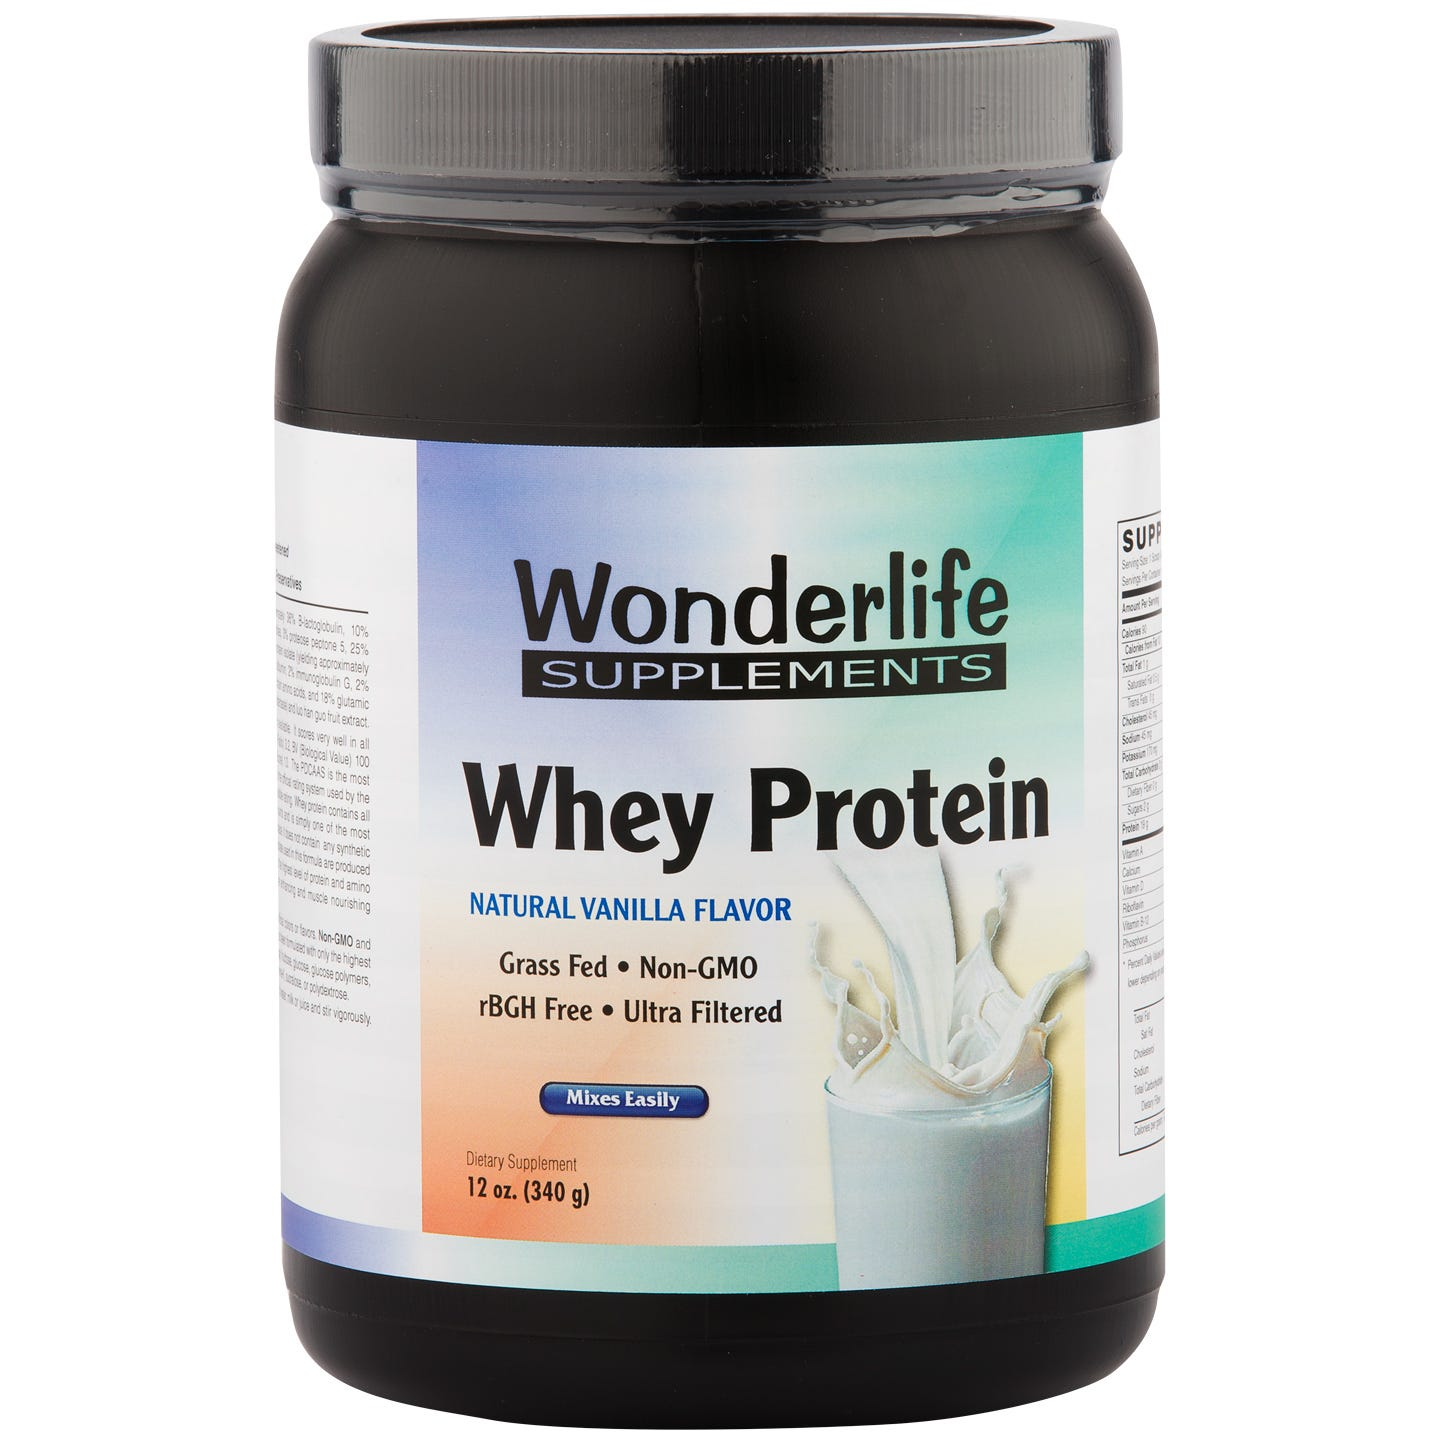 Whey Protein Micro-Filtered & Hydrolyzed Vanilla 12 oz, Wonderlife - Rapid Diet Weight Loss Products Shop